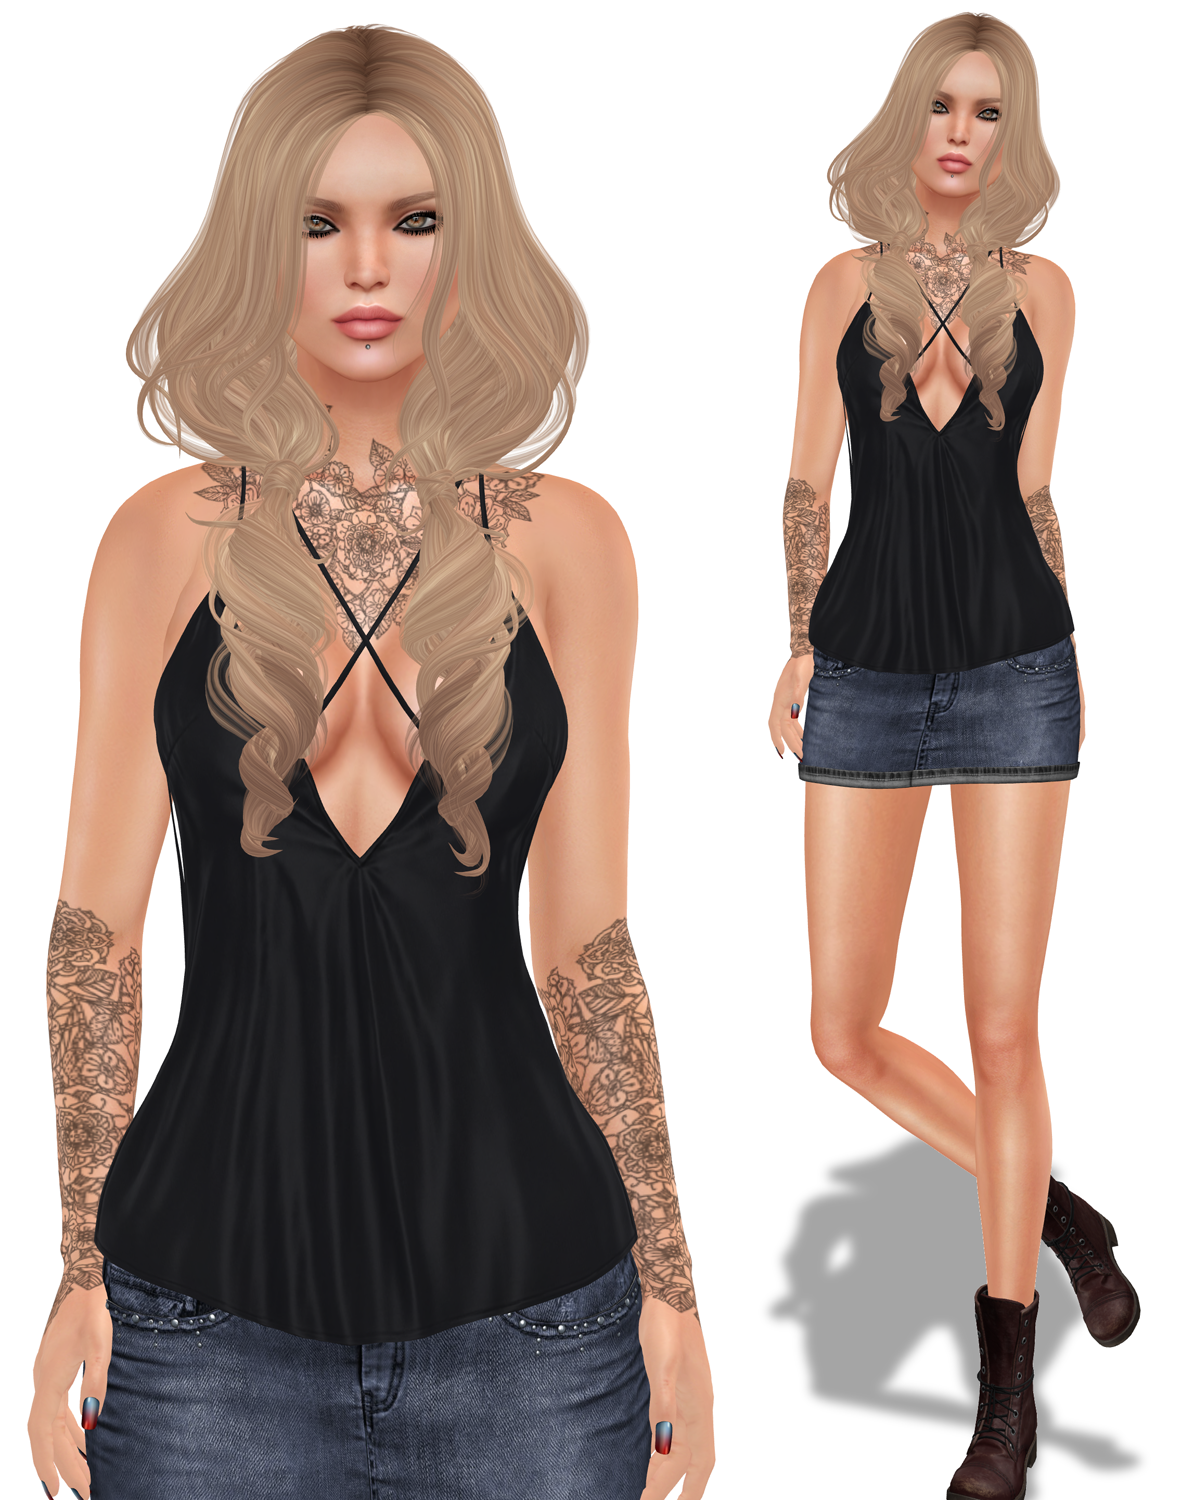 Lotd 557 Your Daily Serving Of Shopping And Style For Your Virtual Life